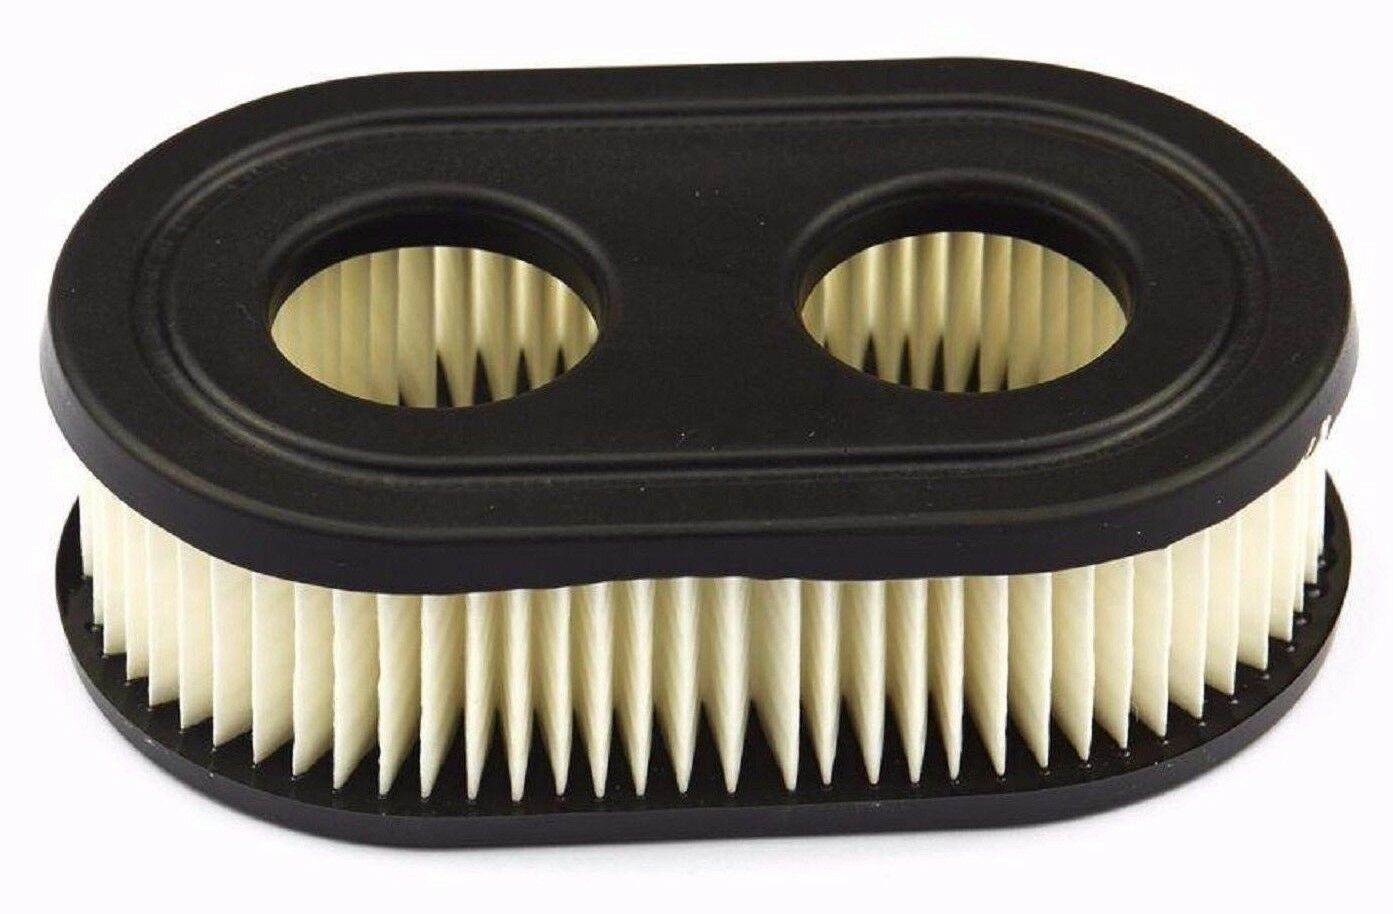 Air filter cartridge replaces Briggs & Stratton 798452 593260